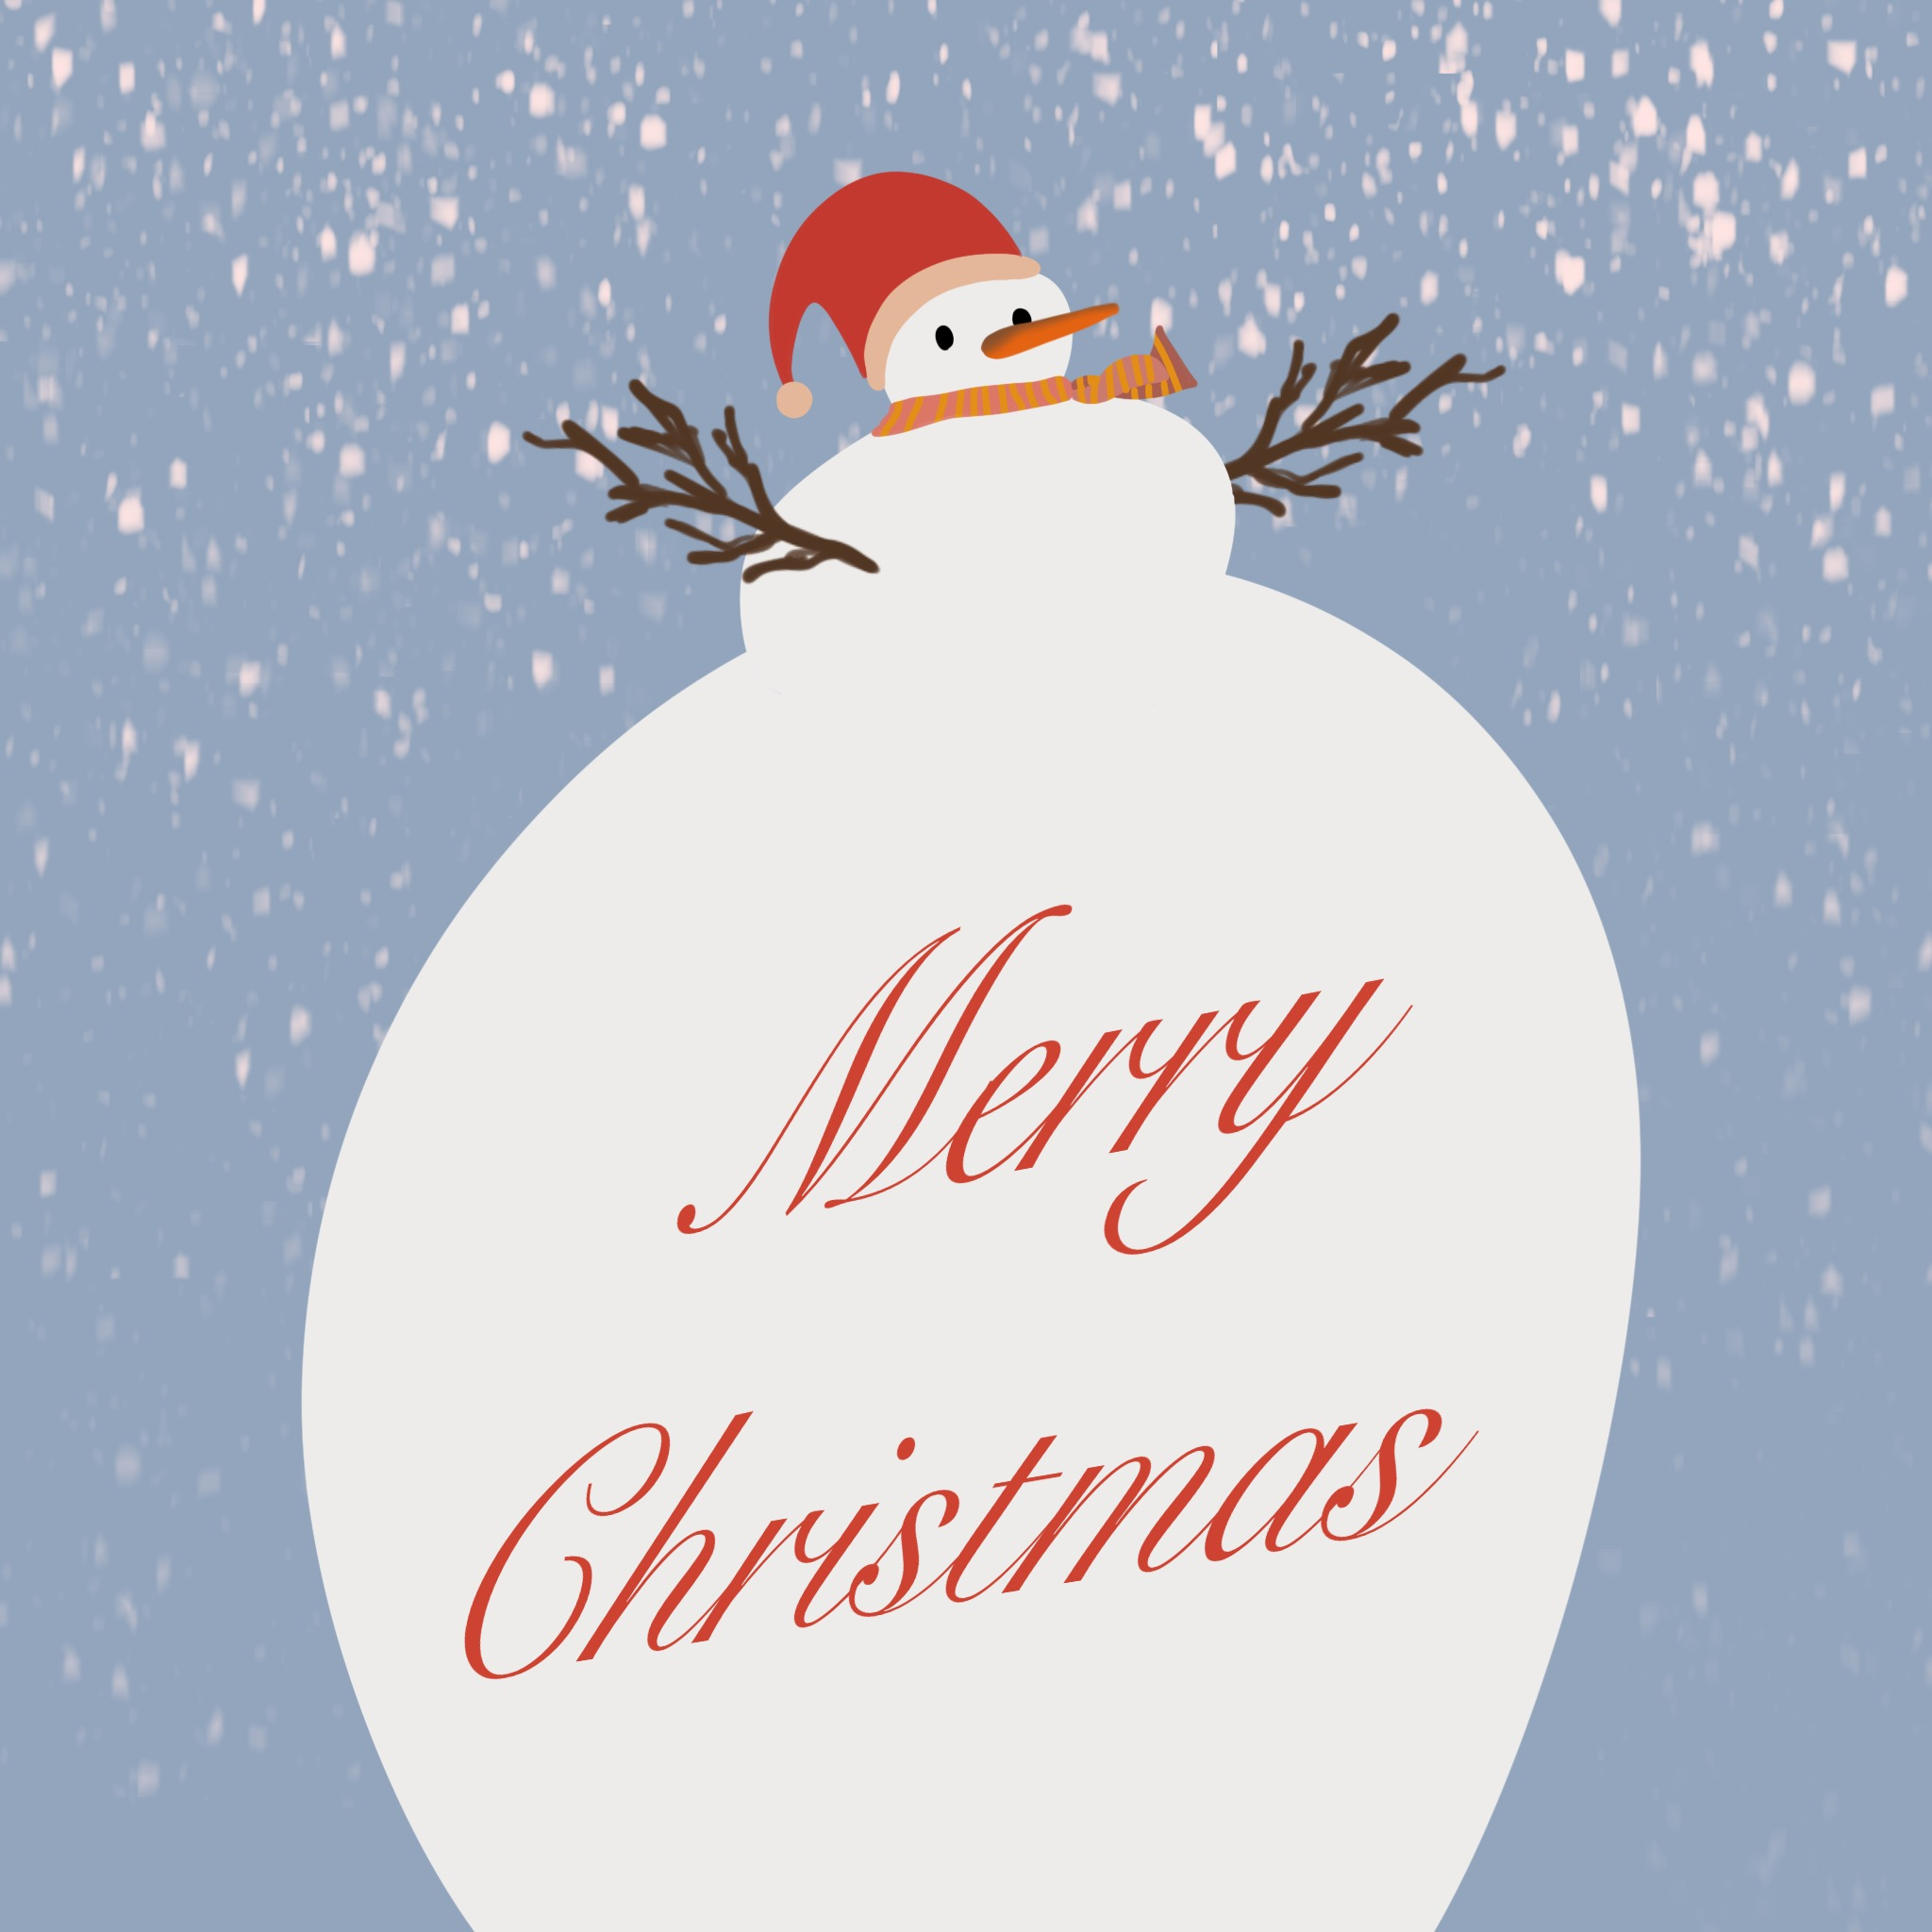 christmas-wishes-messages-greetings